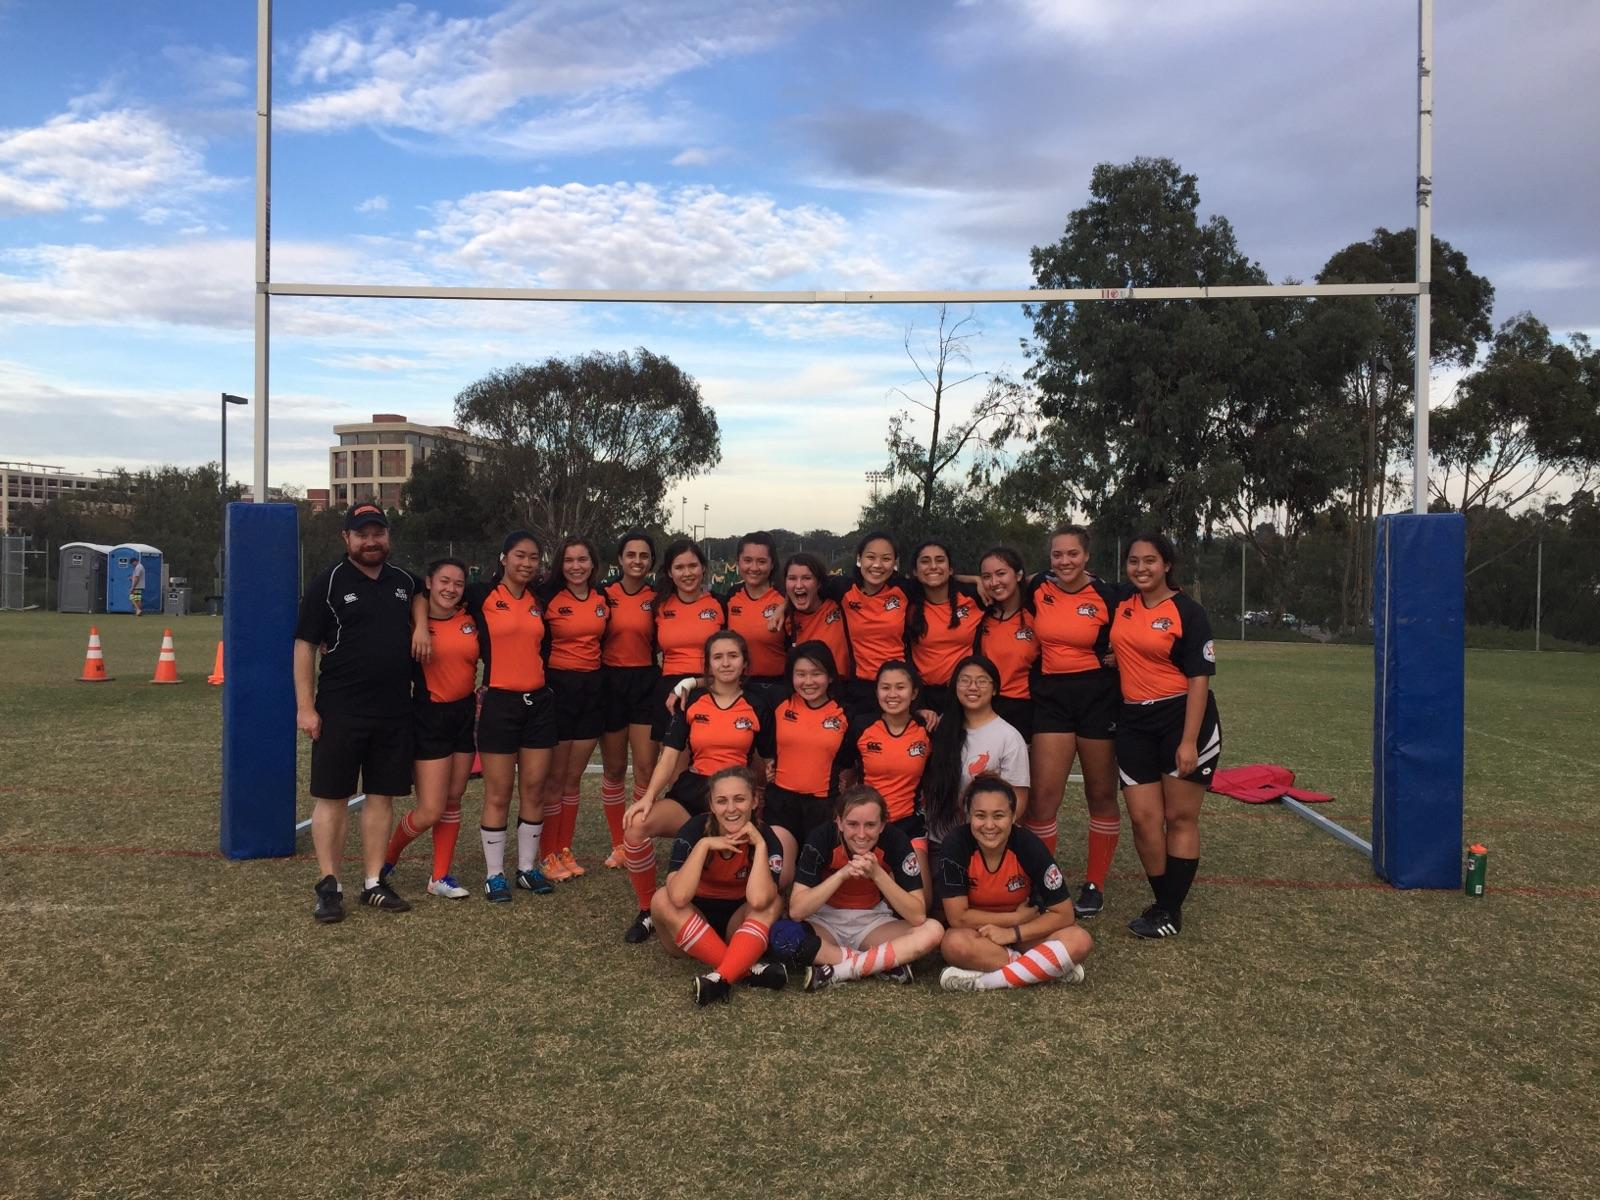 The ladies of Occidental College Women's Rugby Club